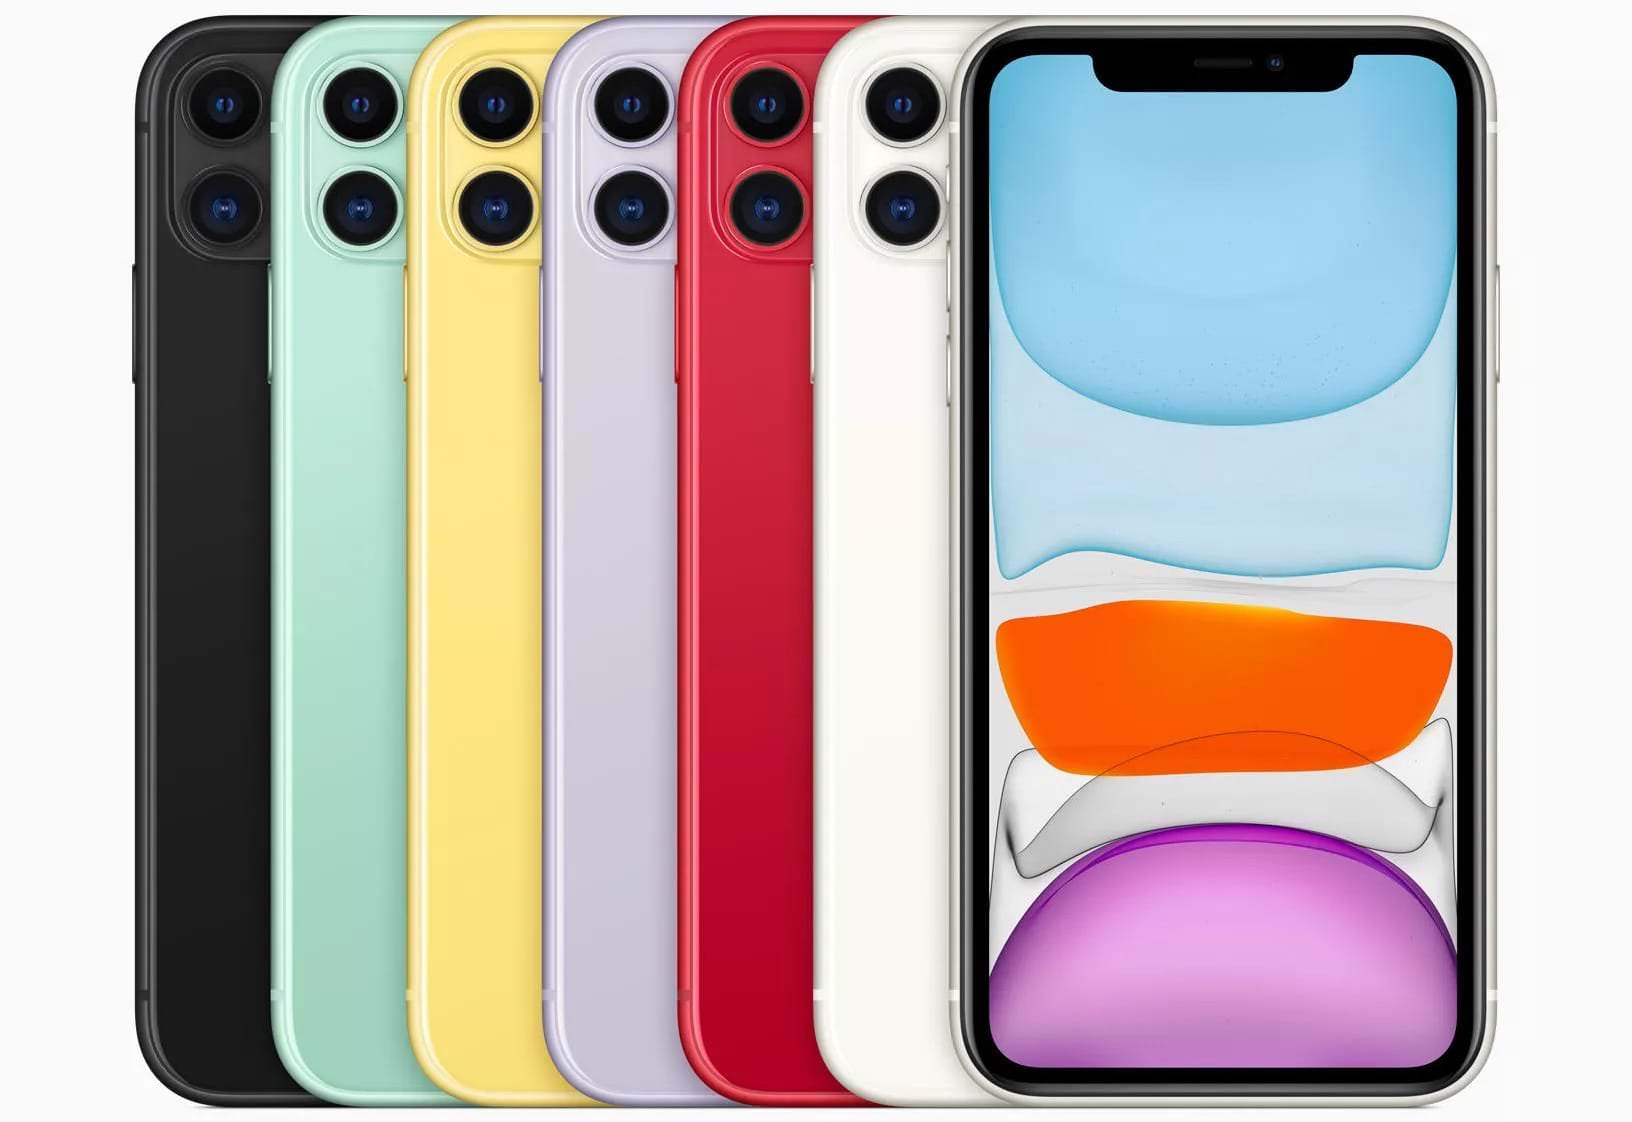 Hey, looks like you need help finding something. Apple Released The Iphone 11 With A Slot For Two Sim Cards Vexpress